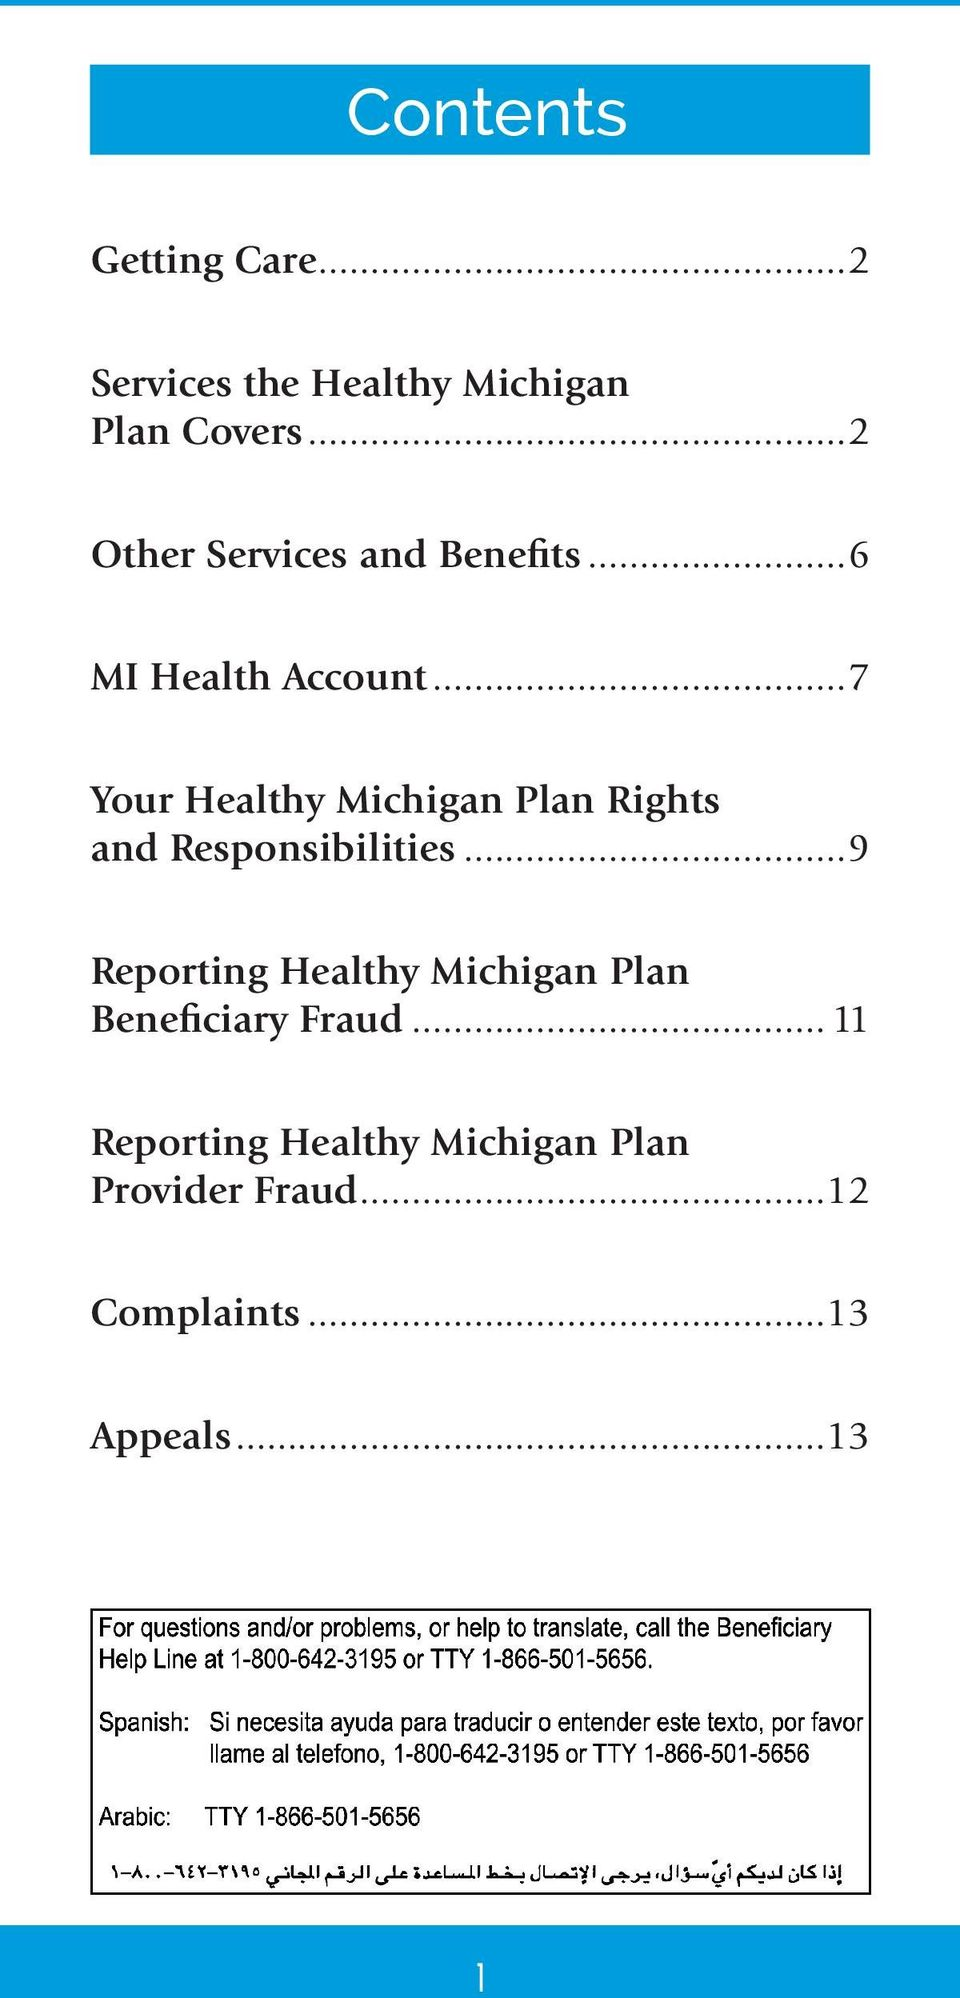 ..7 Your Healthy Michigan Plan Rights and Responsibilities.